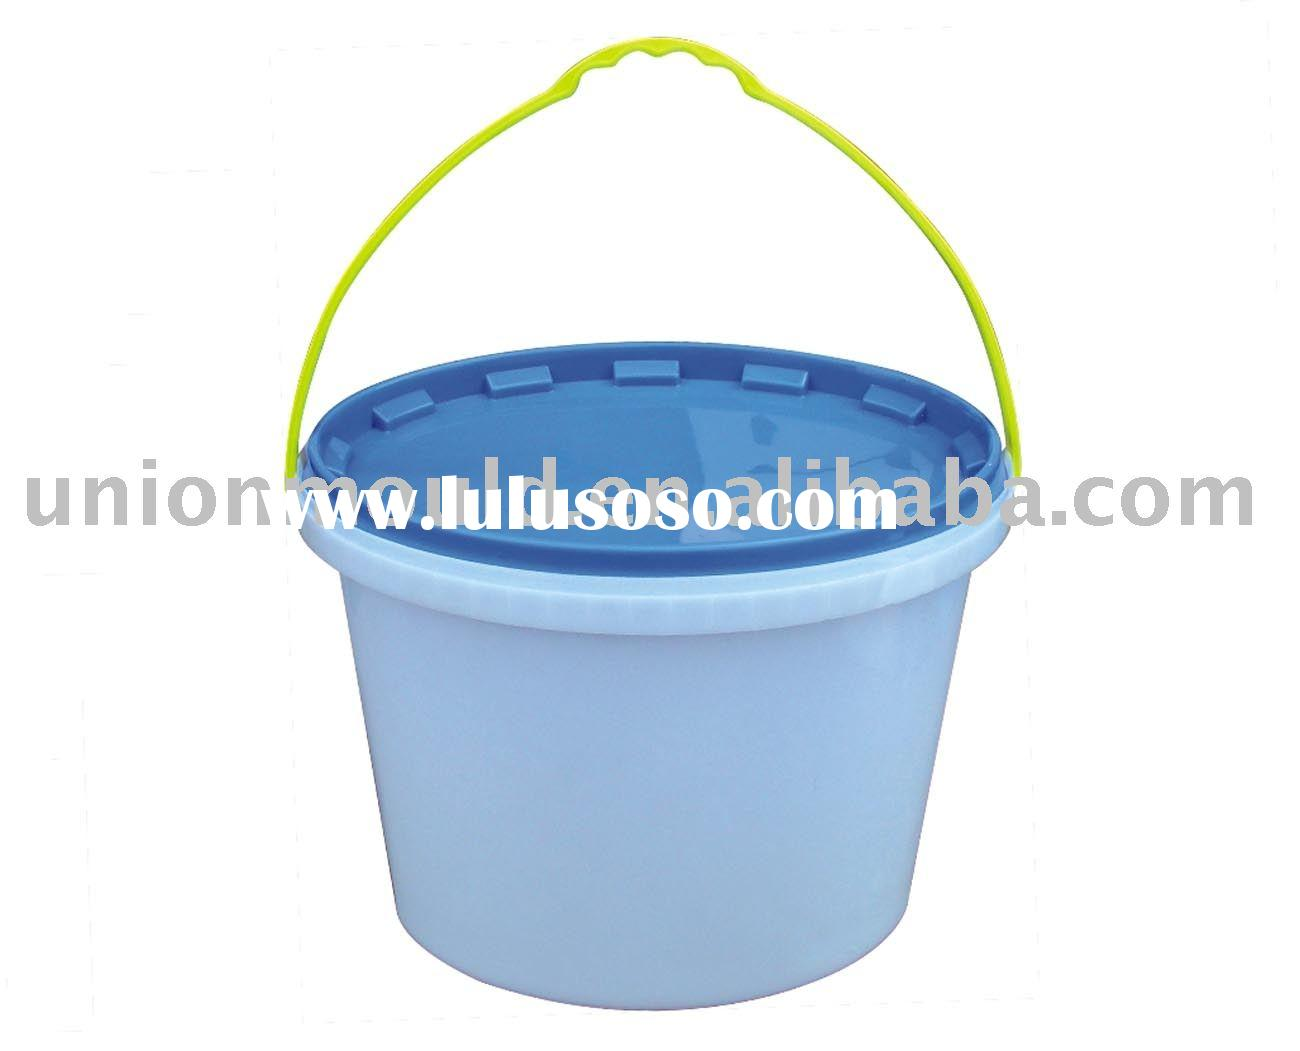 plastic painting bucket mould-paint bucket mold-huangyan mold-china mould-construction mold-plastic